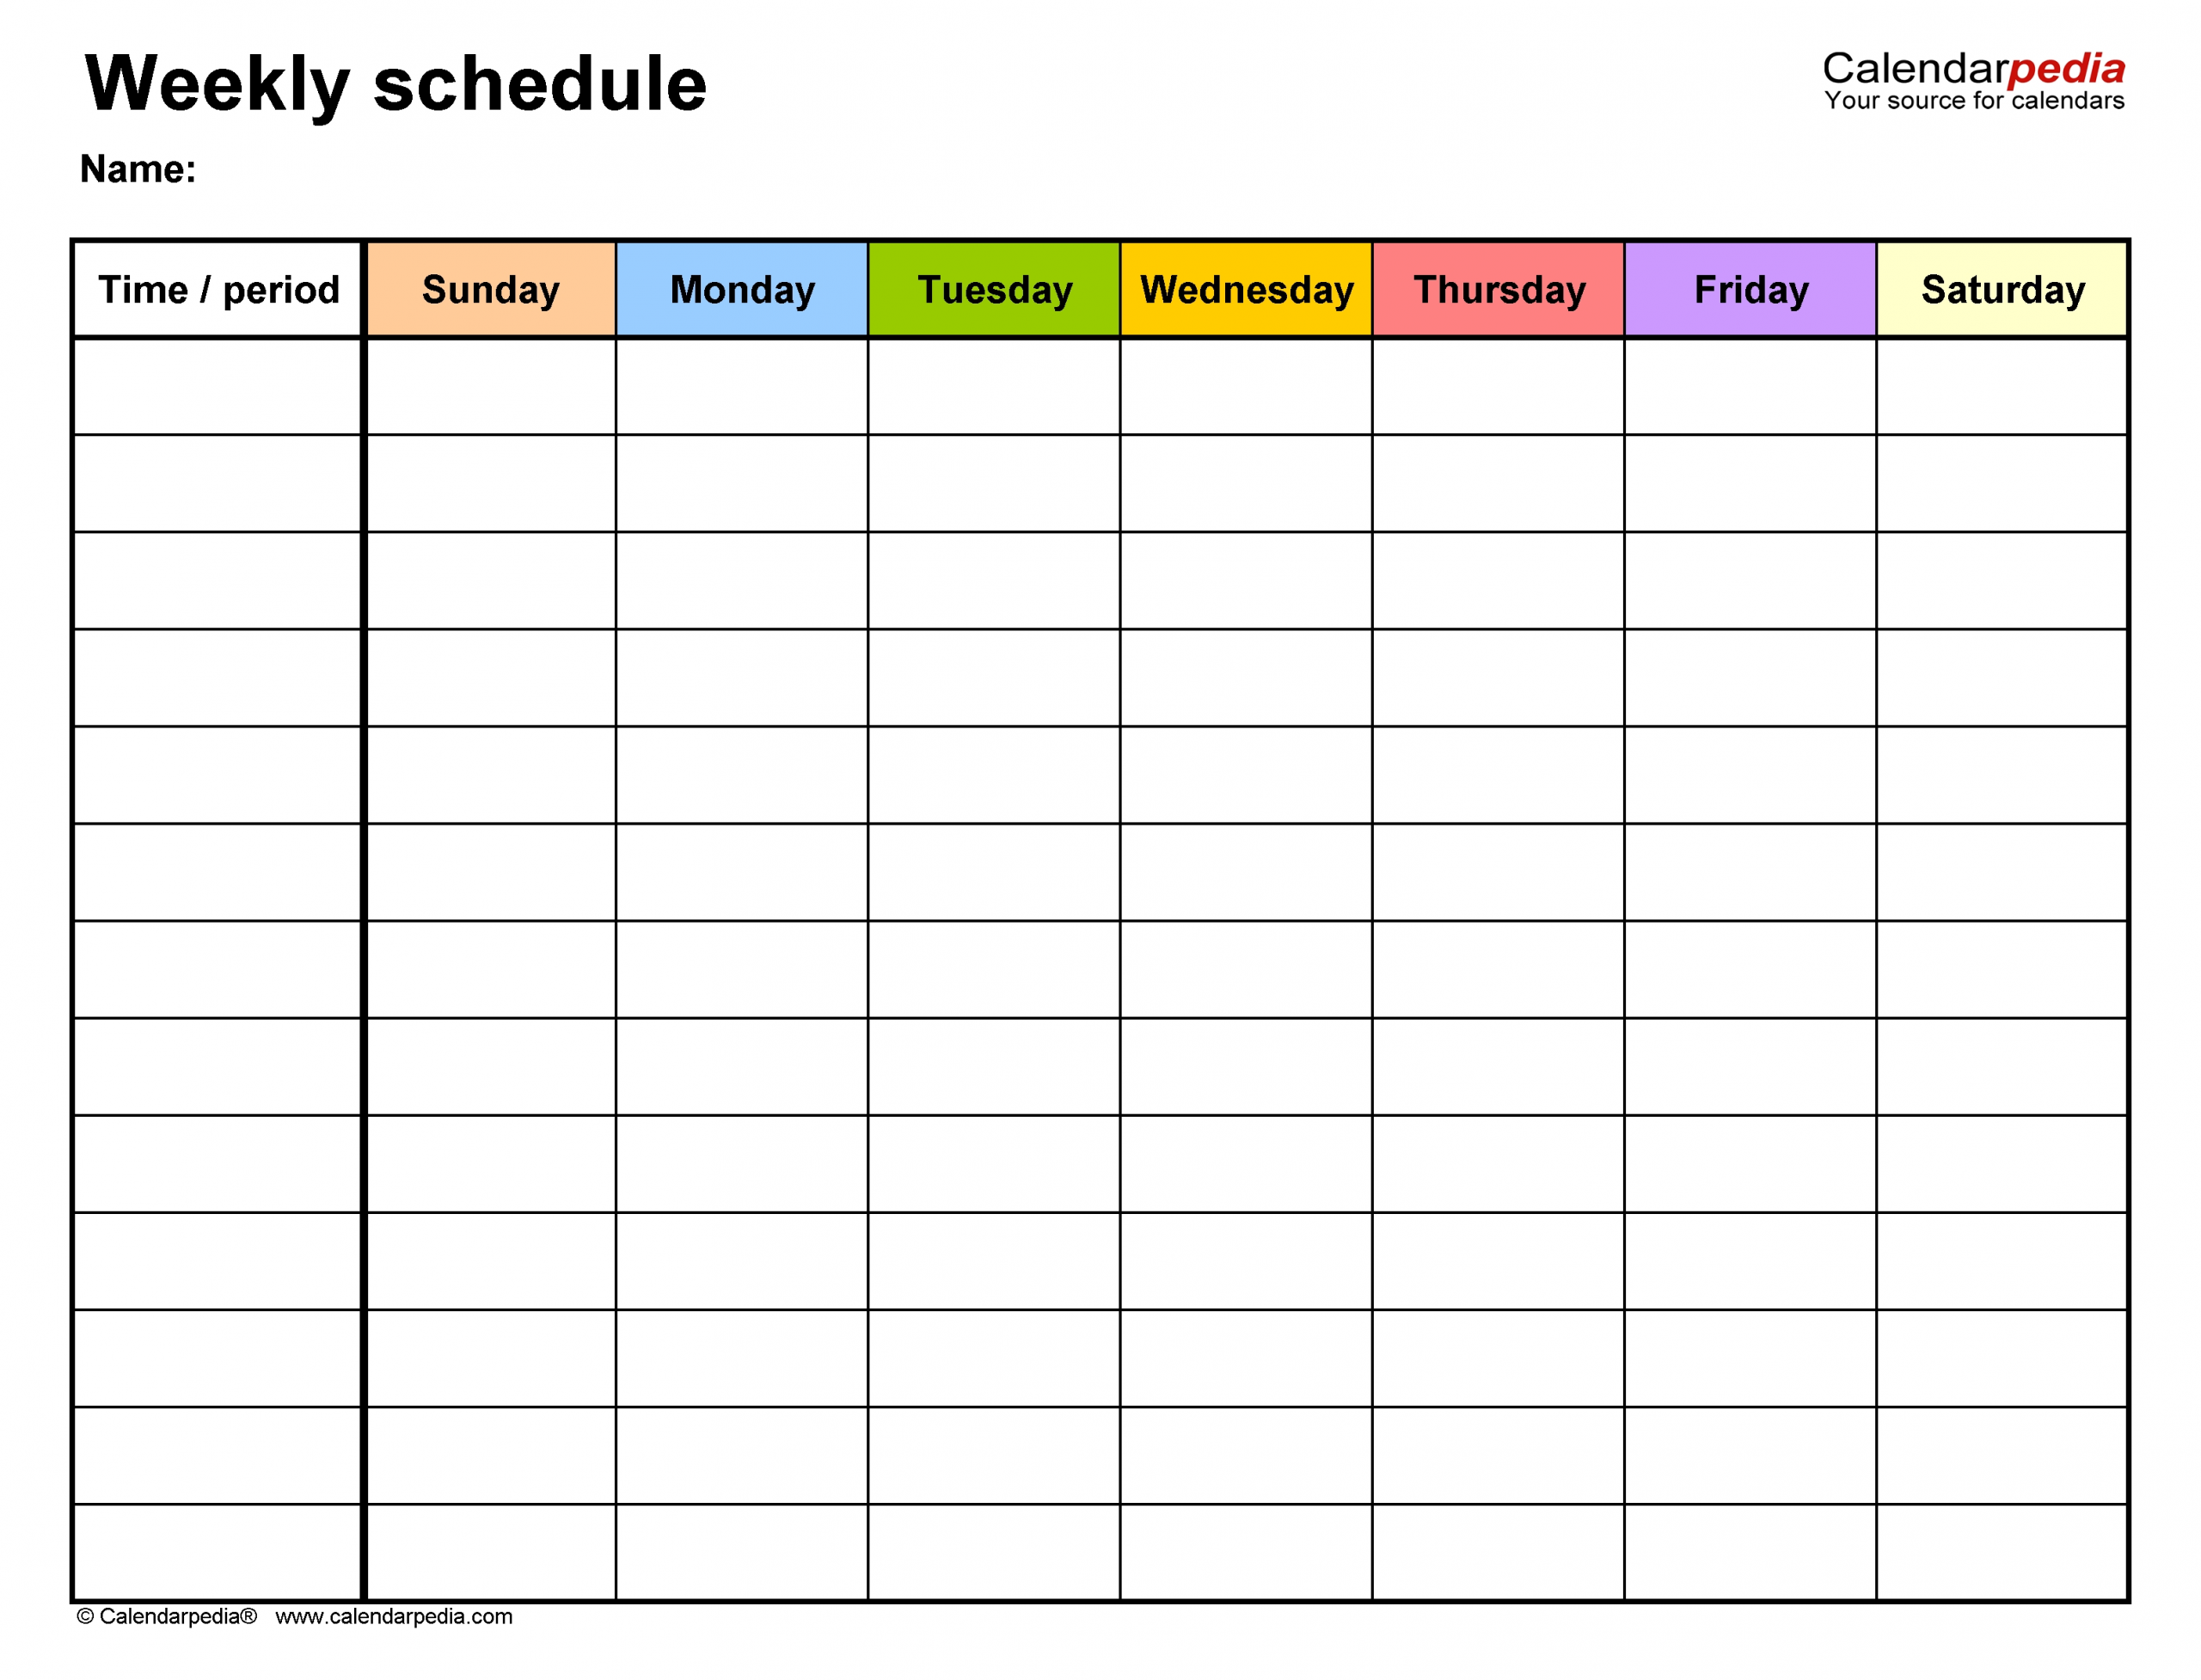 Free Weekly Schedule Templates For Word - 18 Templates  7 Day Weekly Planner Template